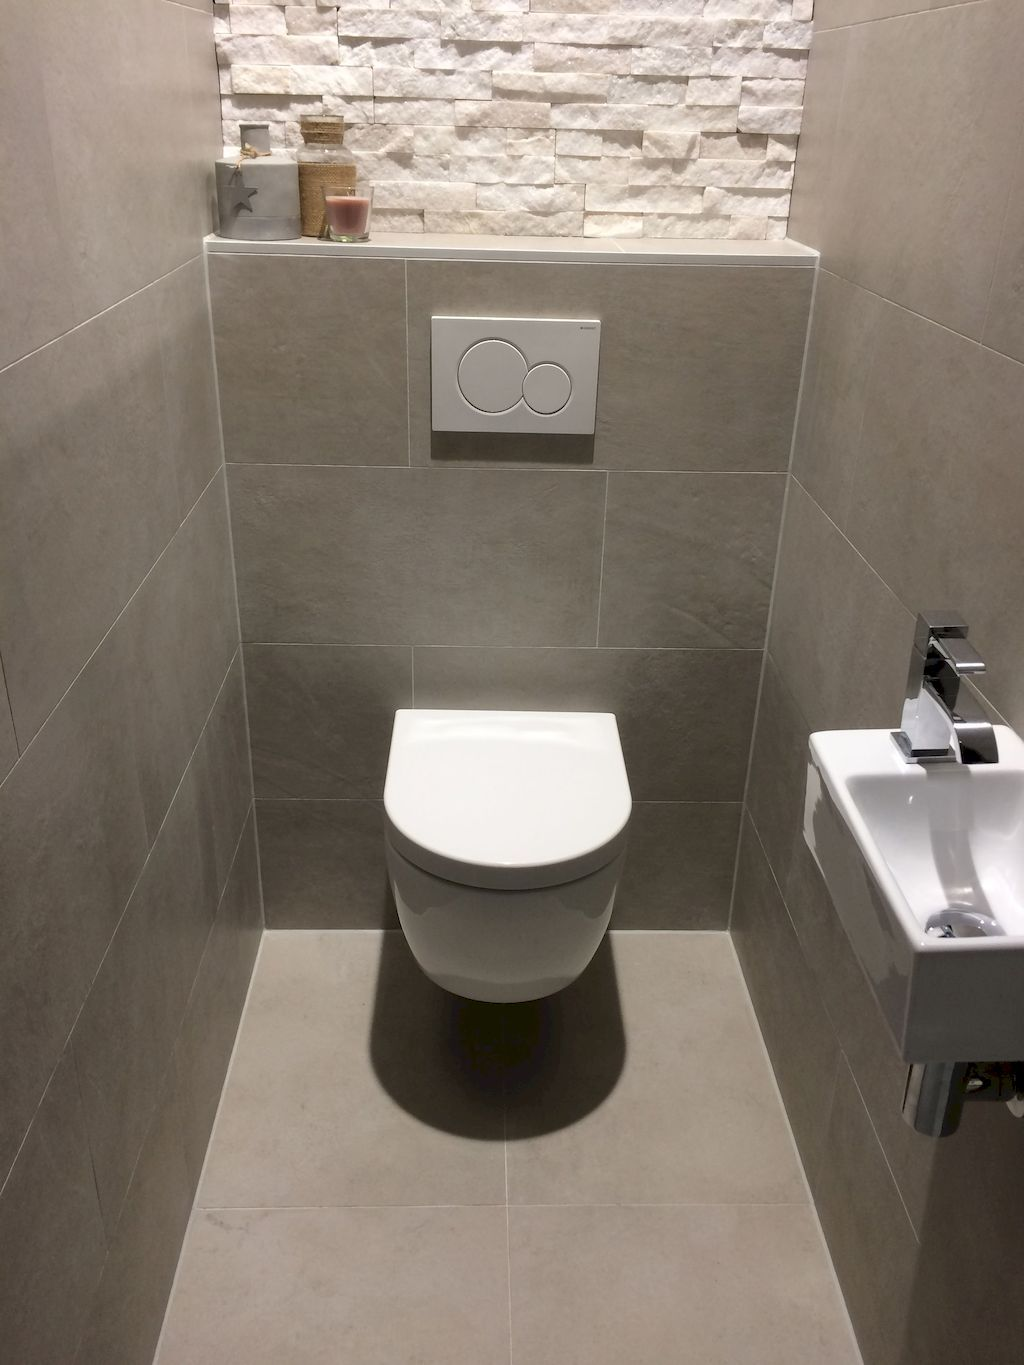 Space Saving Toilet Design For Small Bathroom Home To Z Space Saving Toilet Small Bathroom Small Toilet Room